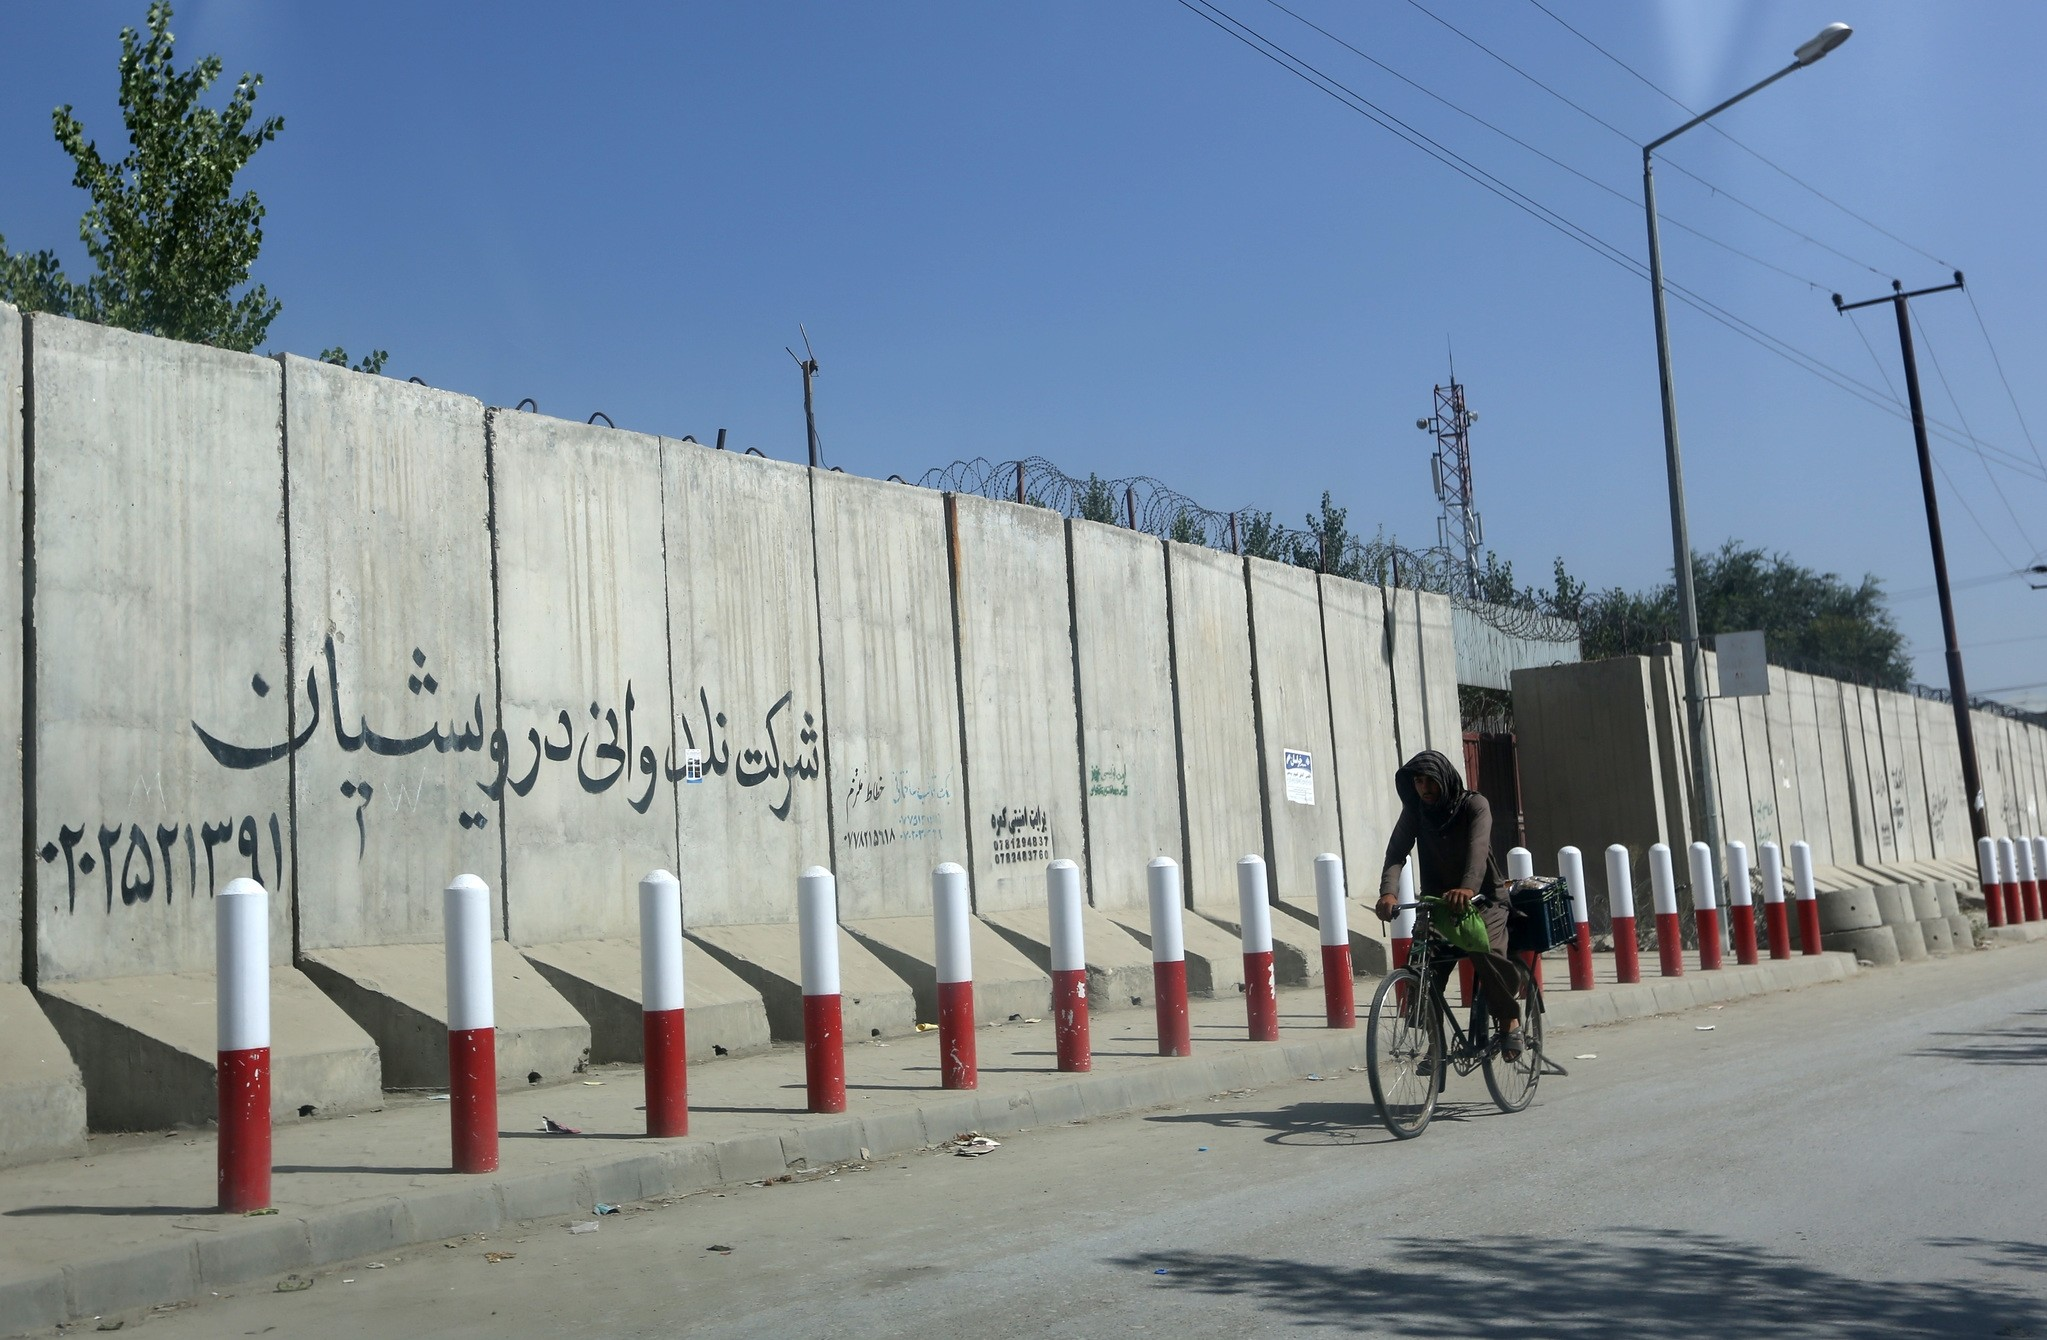 An Afghan man pedals his bicycle past American University of Afghanistan in Kabul, Afghanistan, Monday, Aug. 8, 2016. (AP Photo)